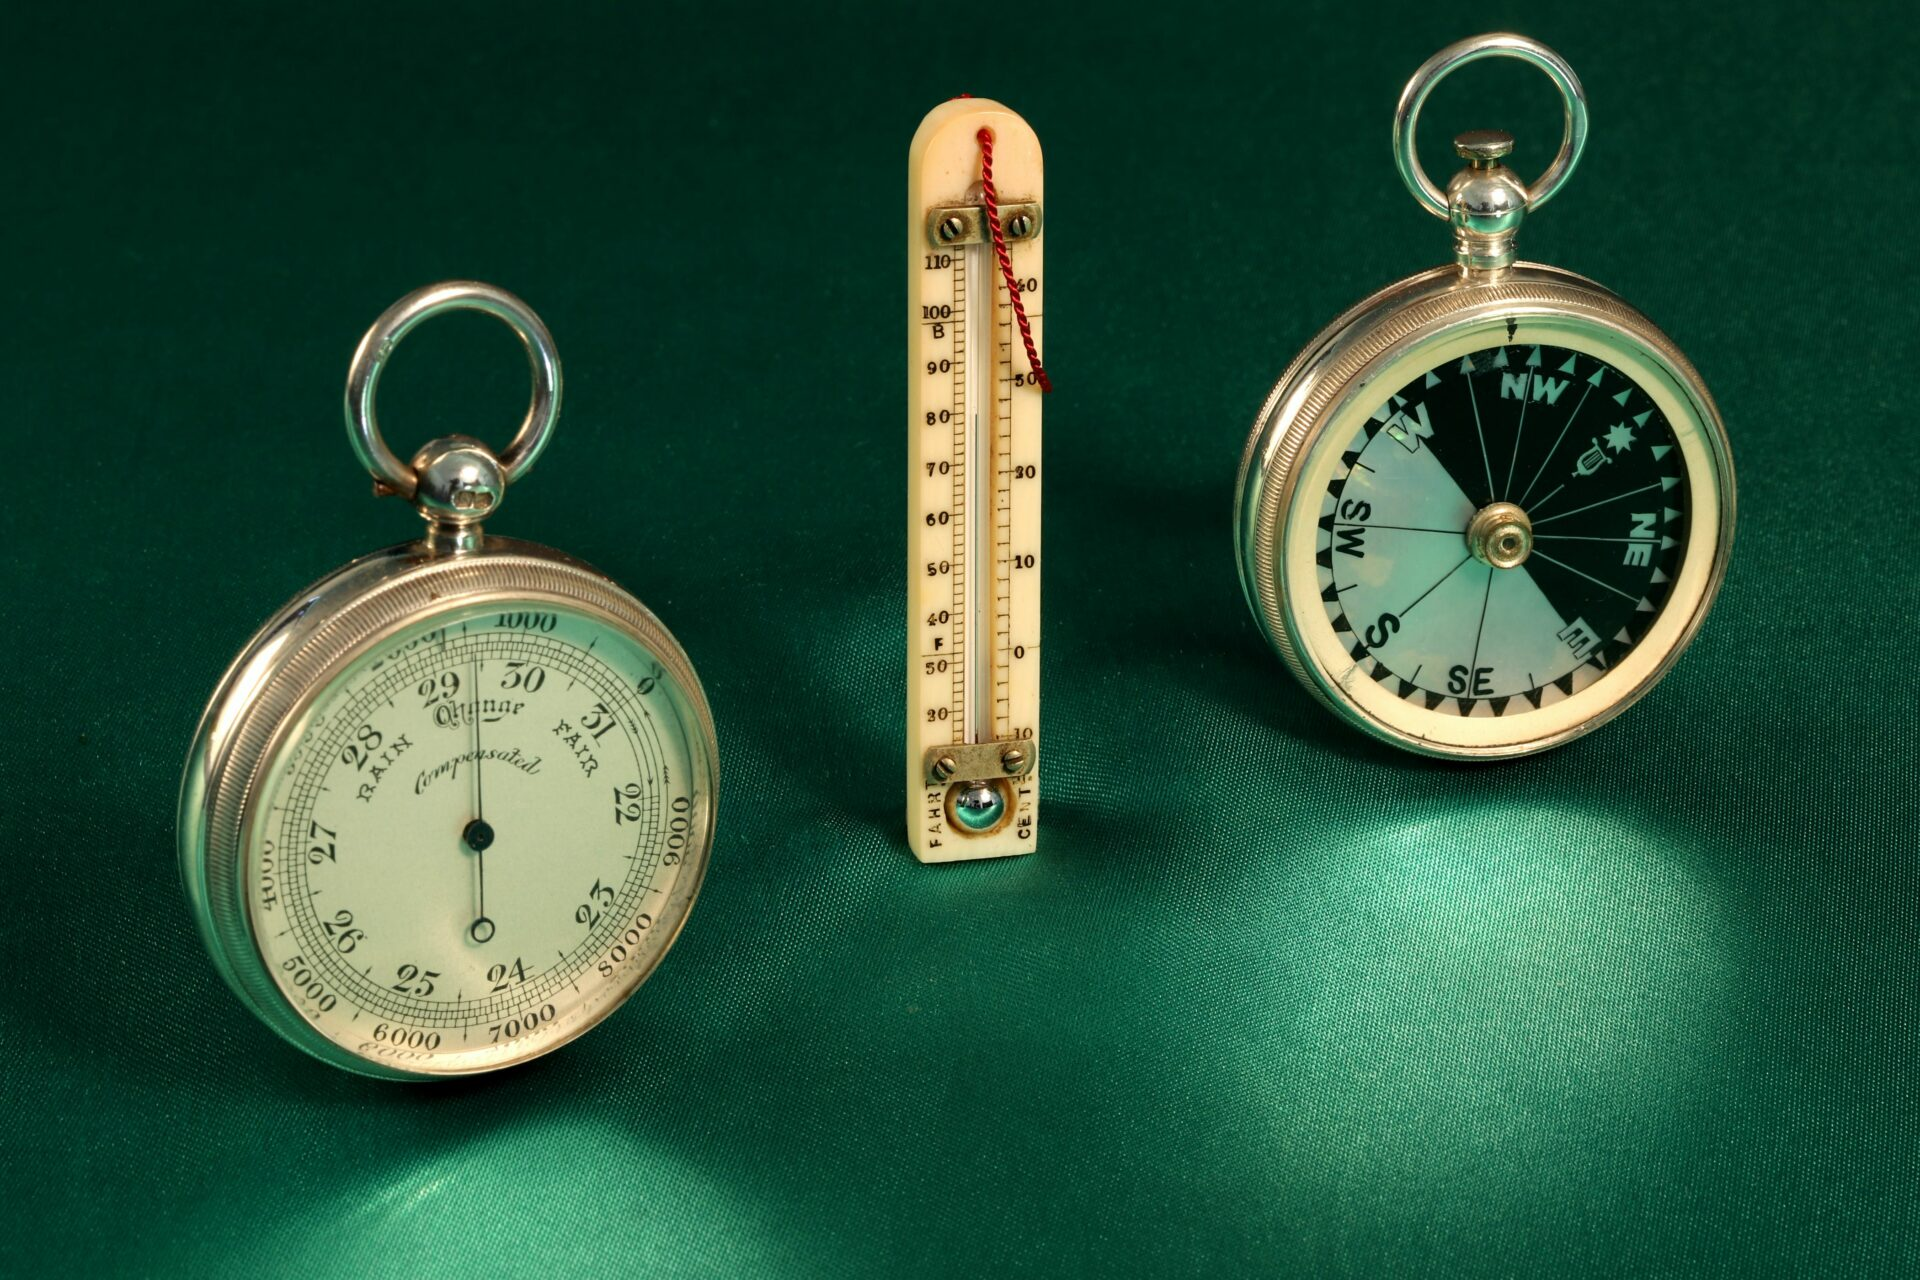 Image of pocket barometer, thermometer and compass from Cairns Silver Pocket Barometer Compendium c1892